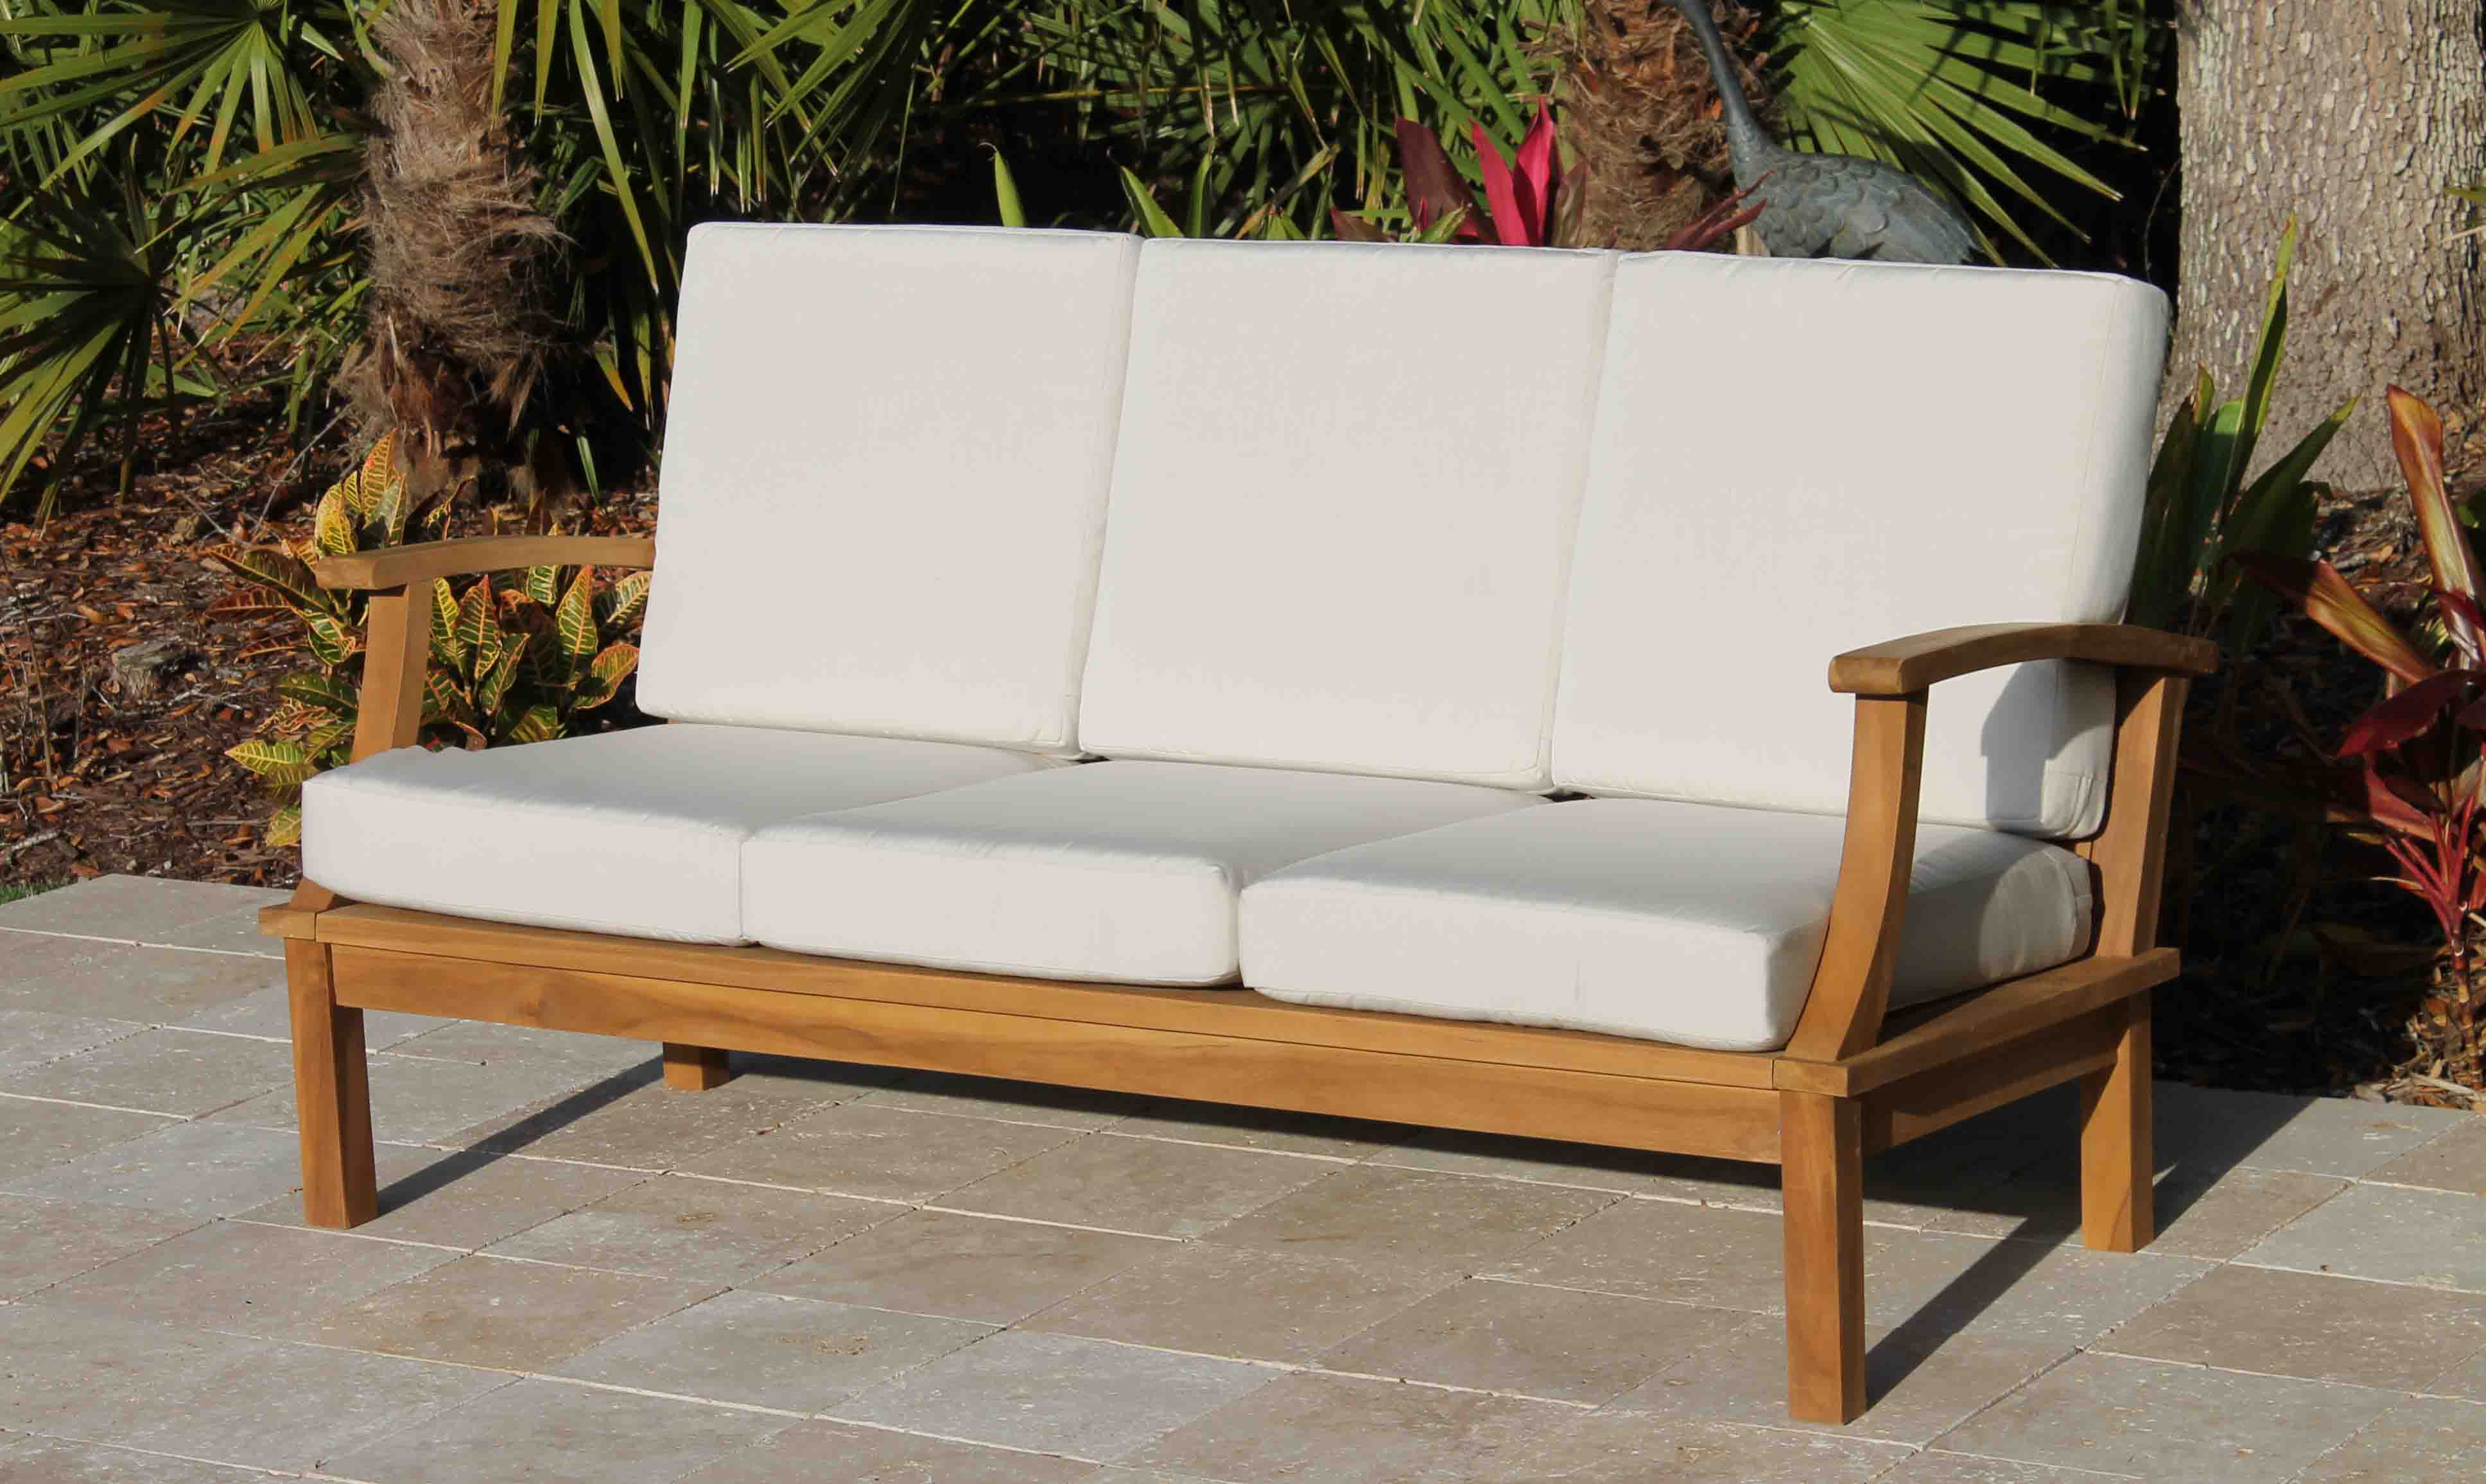 sofa three monterey casual reviews seating with cushions deep seated couch pdx wayfair birds outdoor